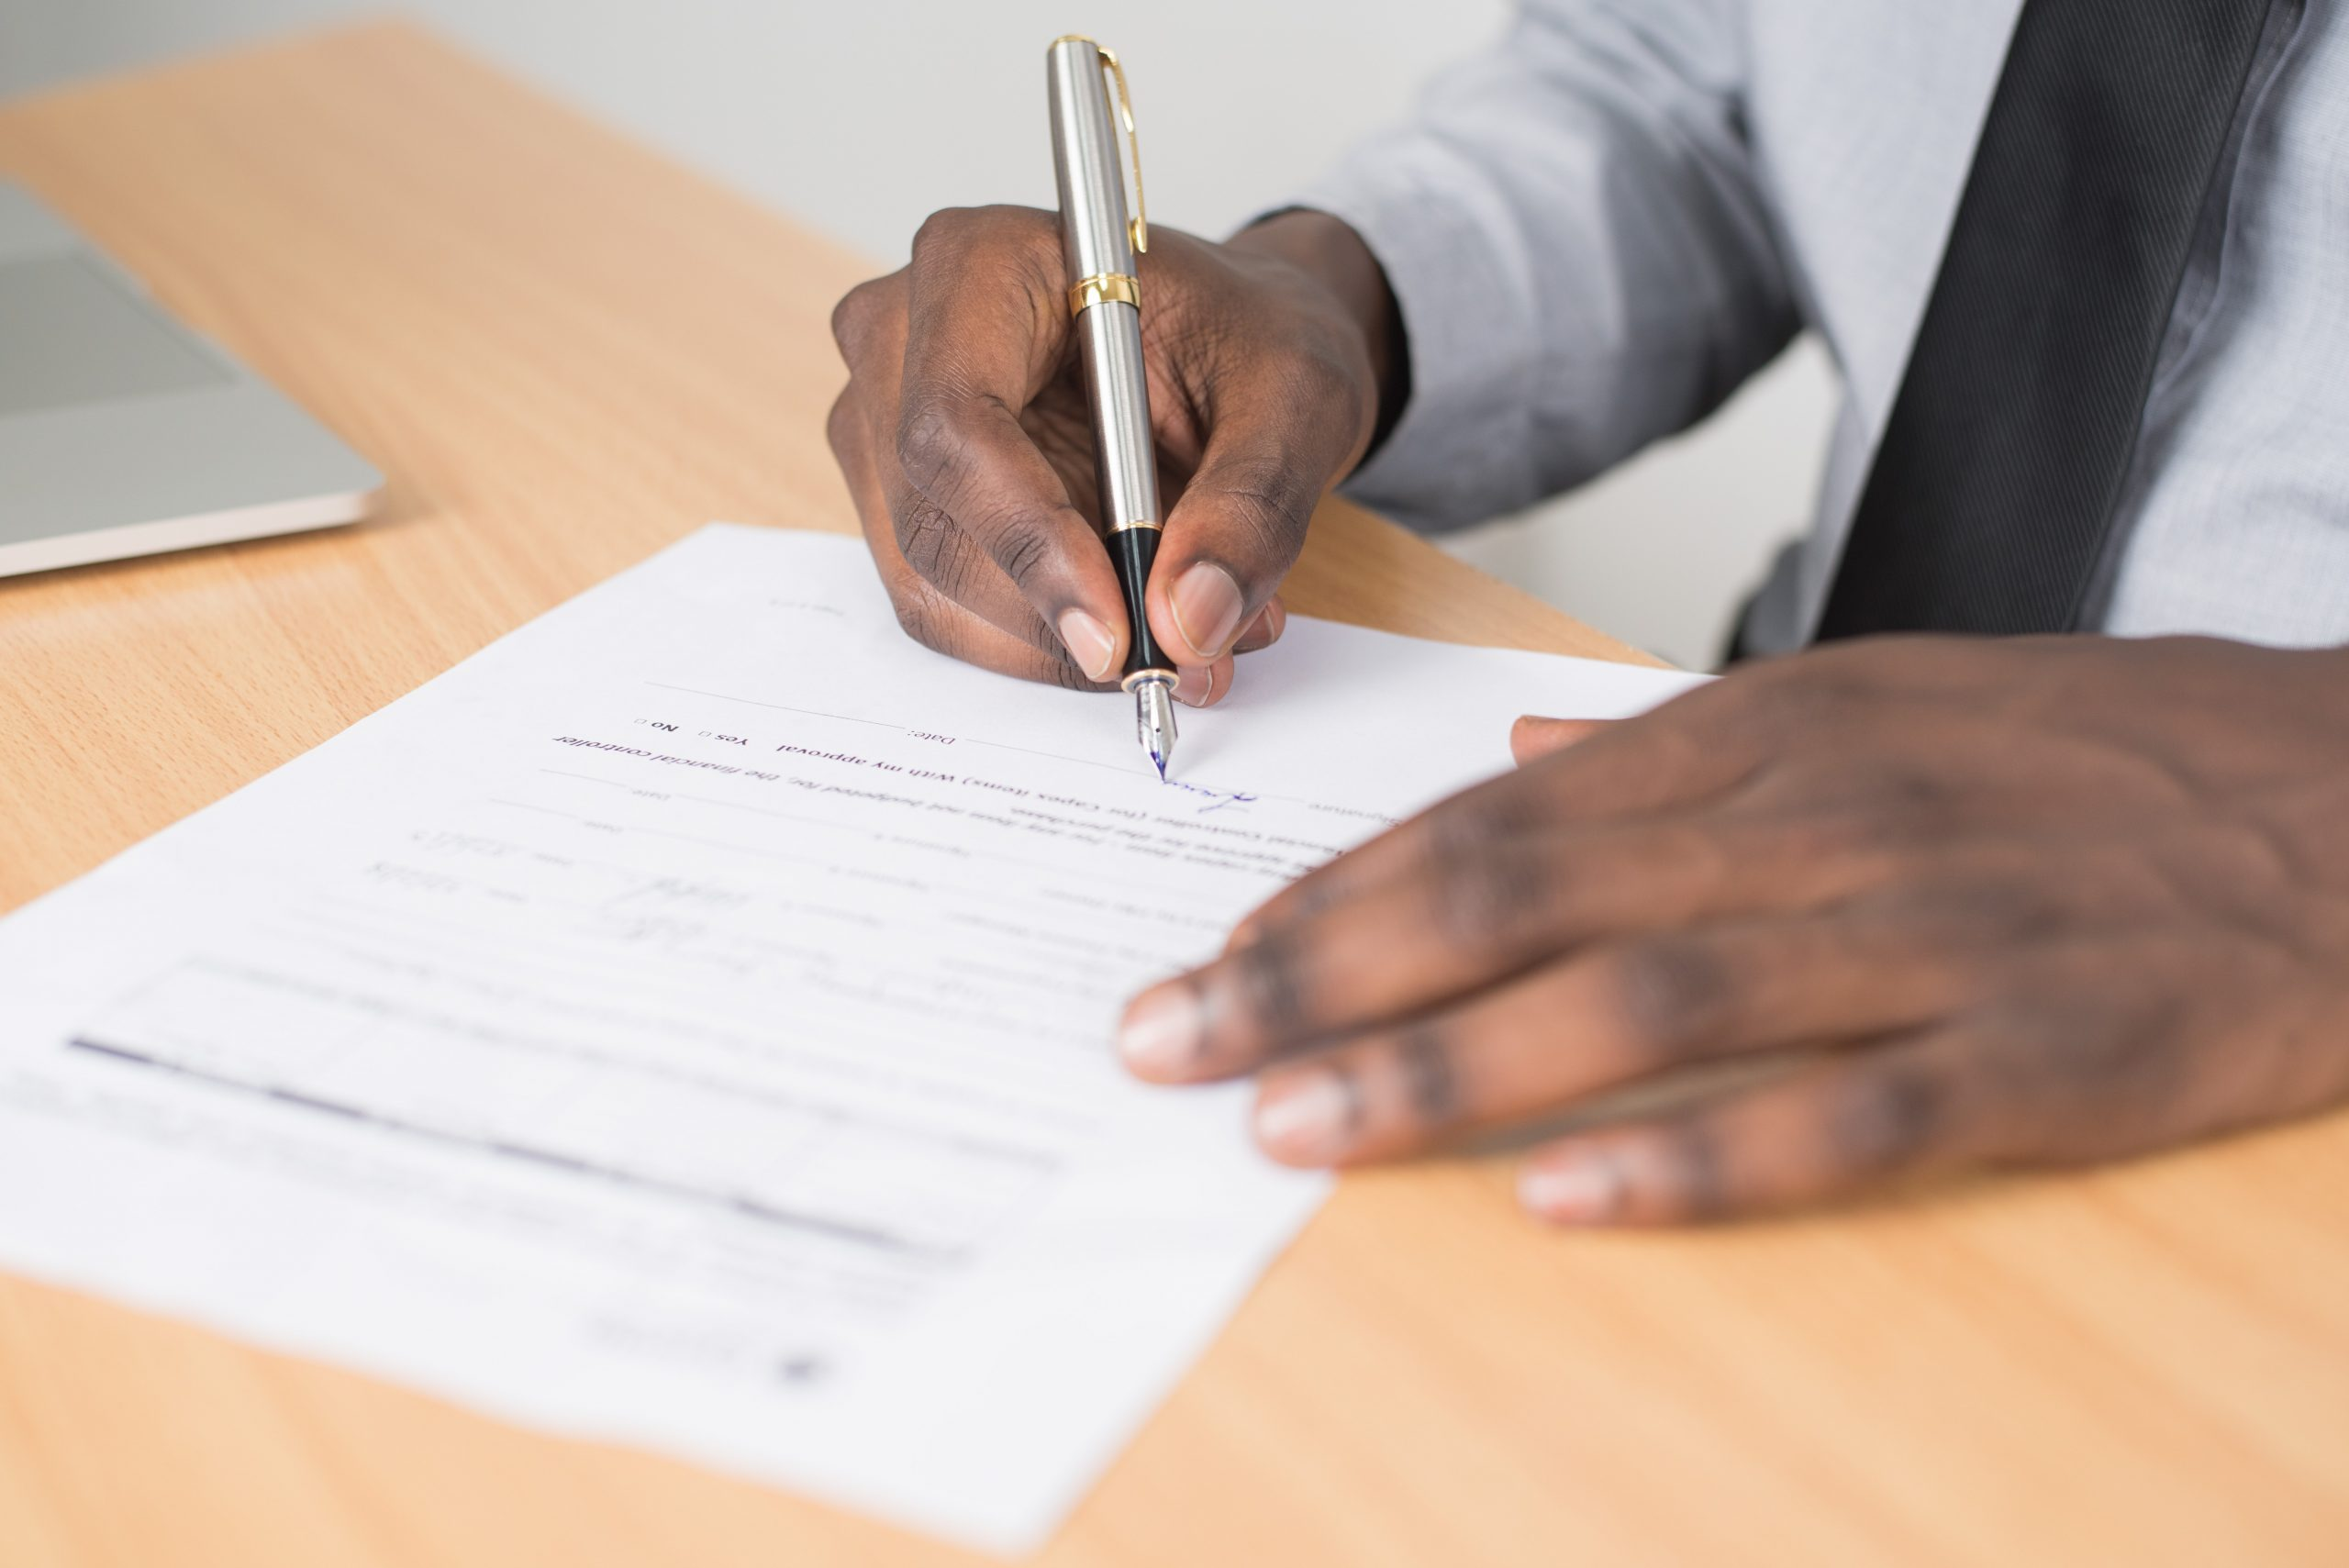 Man in tie signing documents